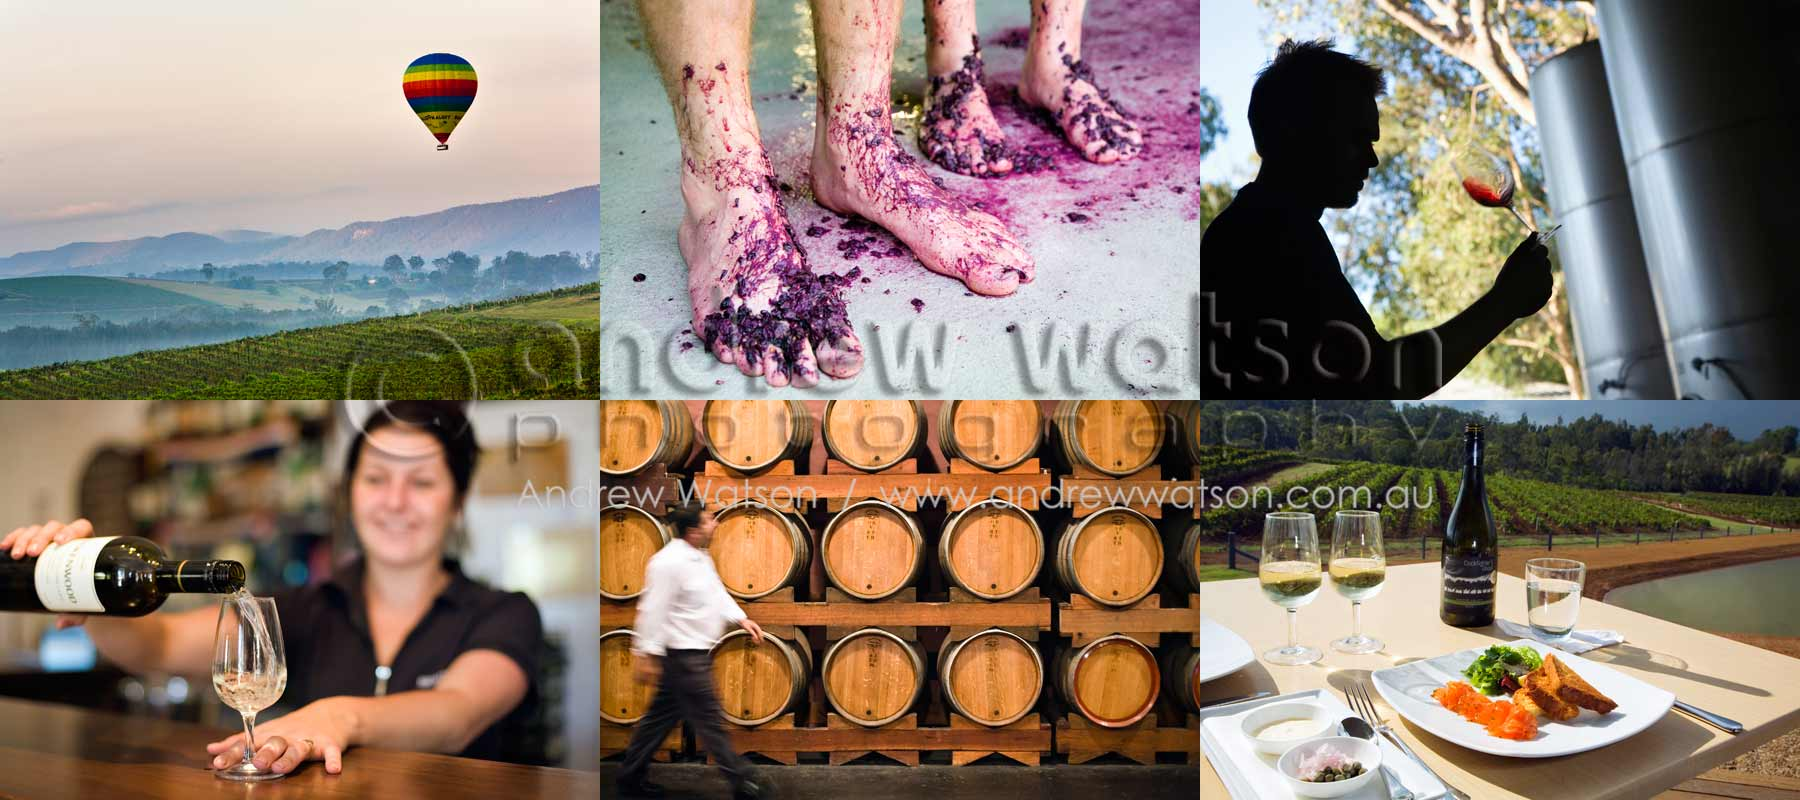 Lifestyle & Tourism Photography - Winery images from the renowned Hunter Valley wine region, Australia